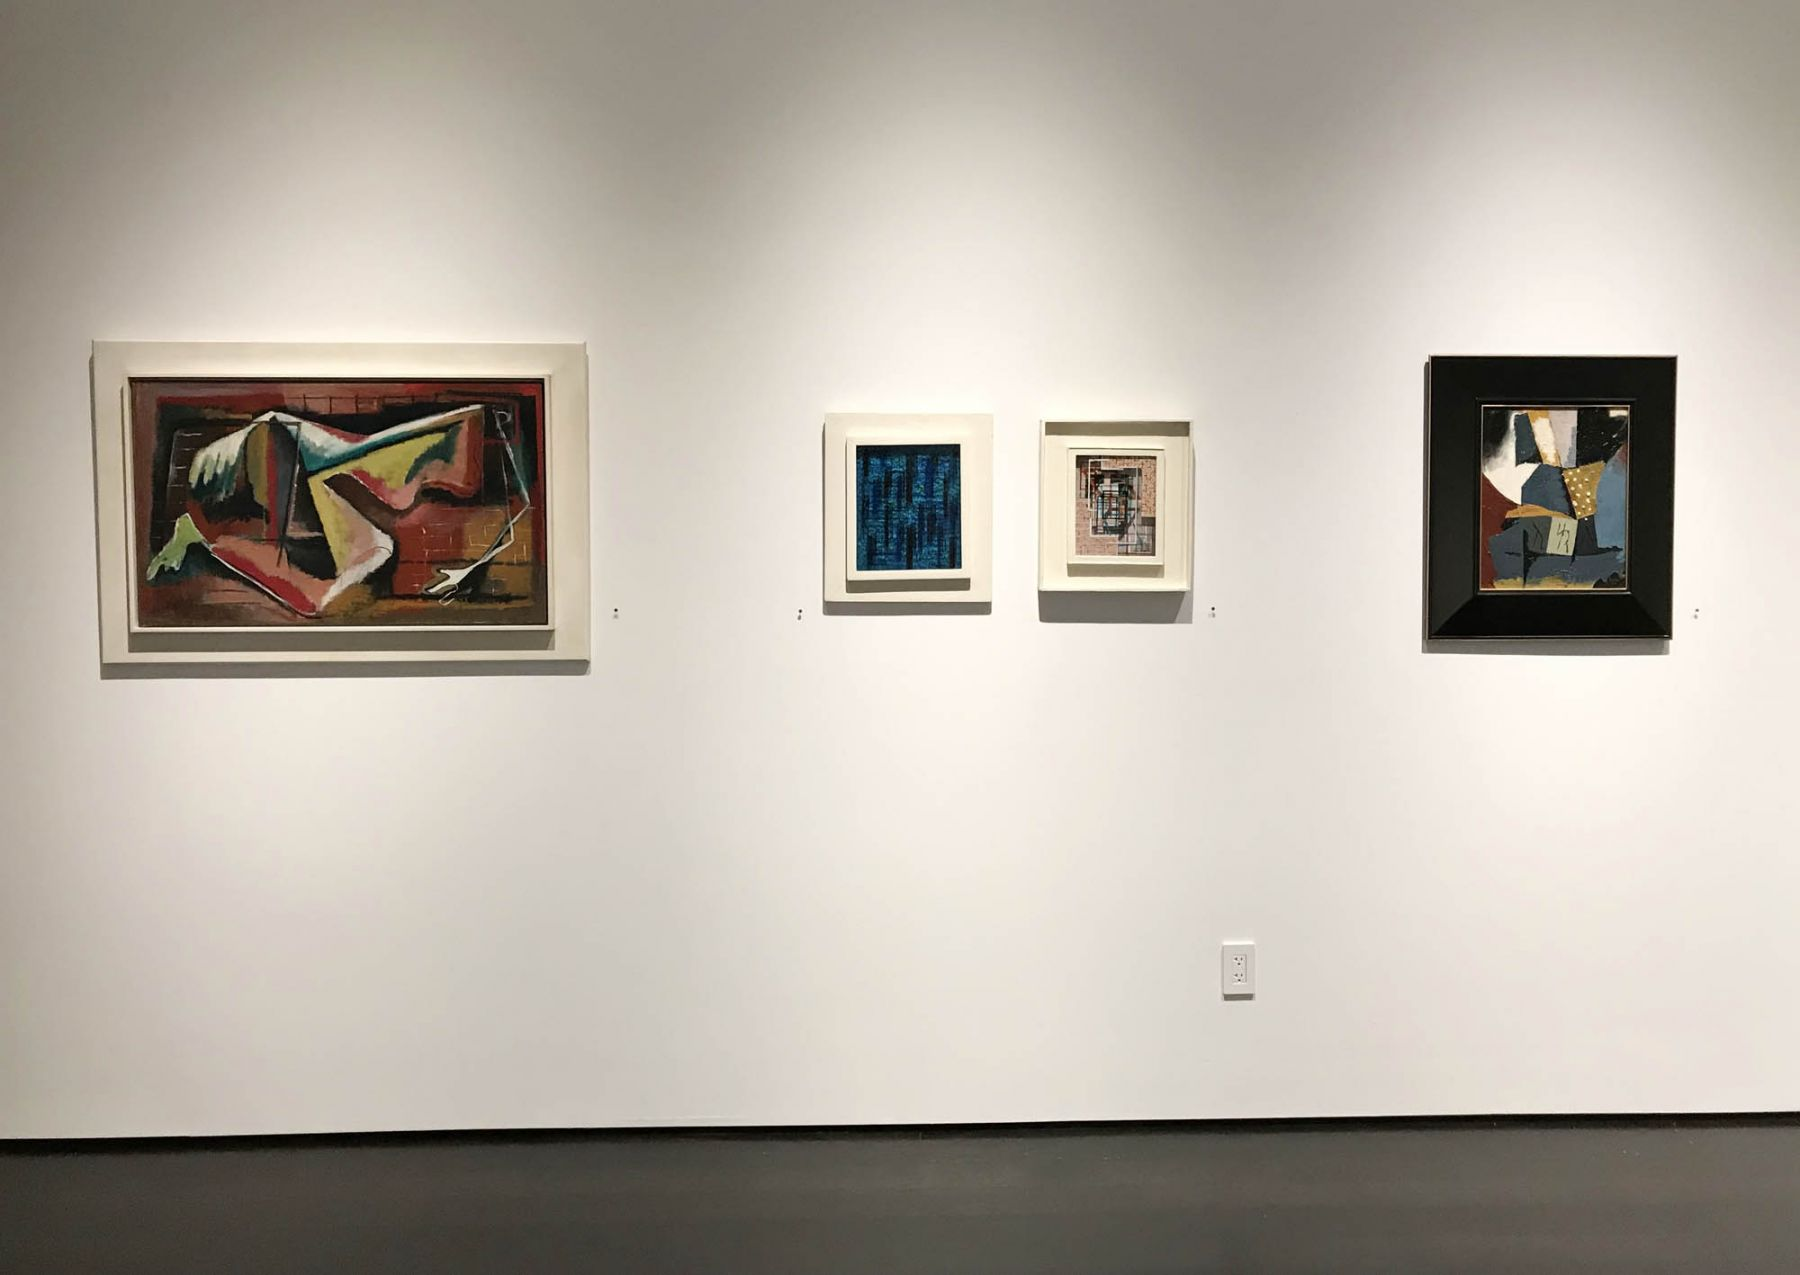 installation photo: Landmarks of 20th Century American Art, Forum Gallery, New York, NY, November 8, 2018 - February 2, 2019